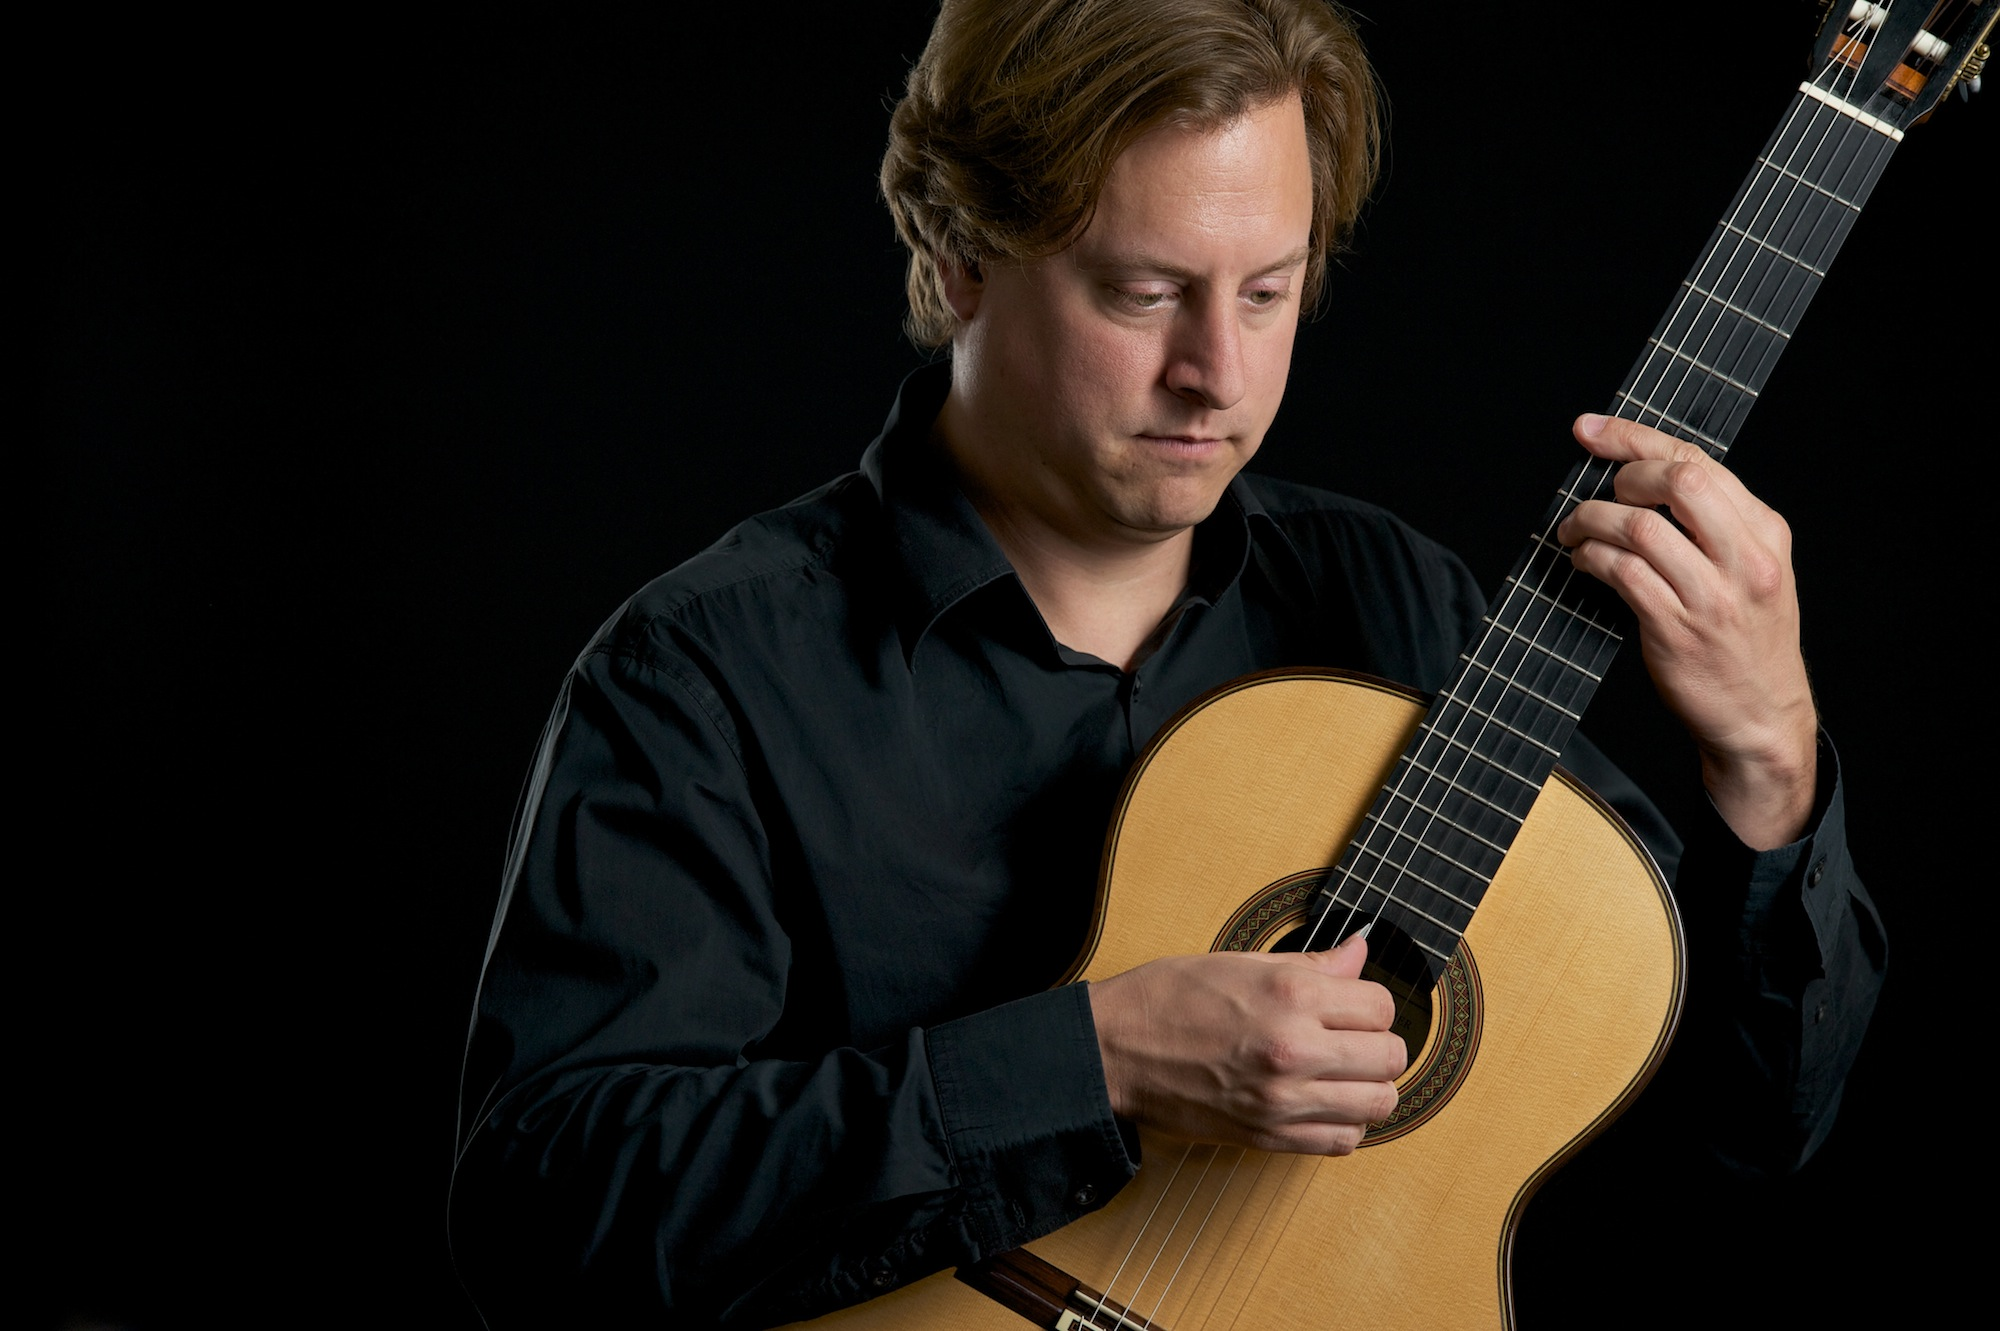 Jason Vieaux on his New Online Classical Guitar School